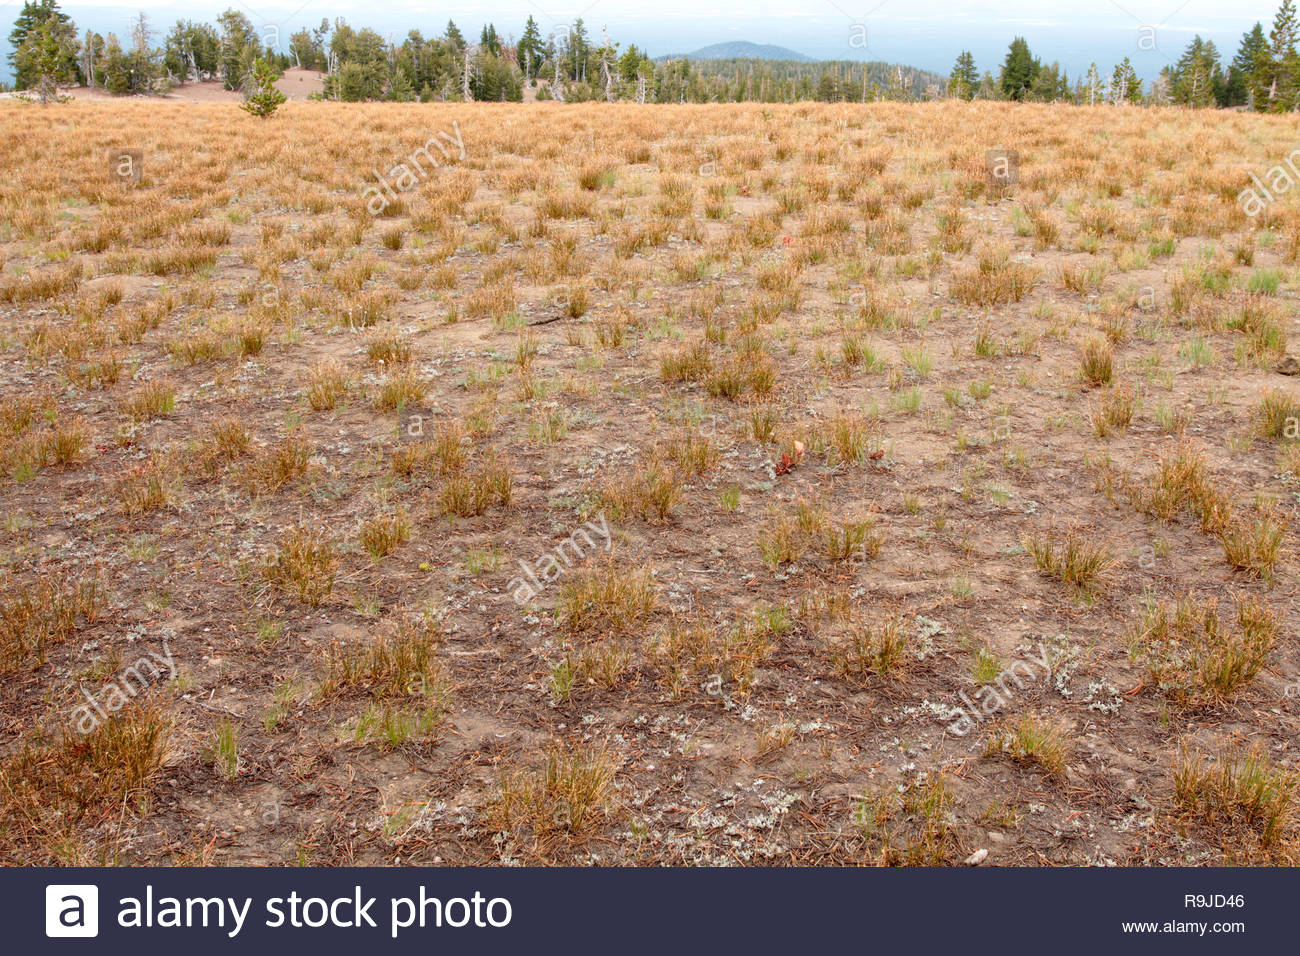 Bunch grasses (Poaceae), Mount Scott Trailhead, Crater Lake National Park, Oregon, USA - Stock Image